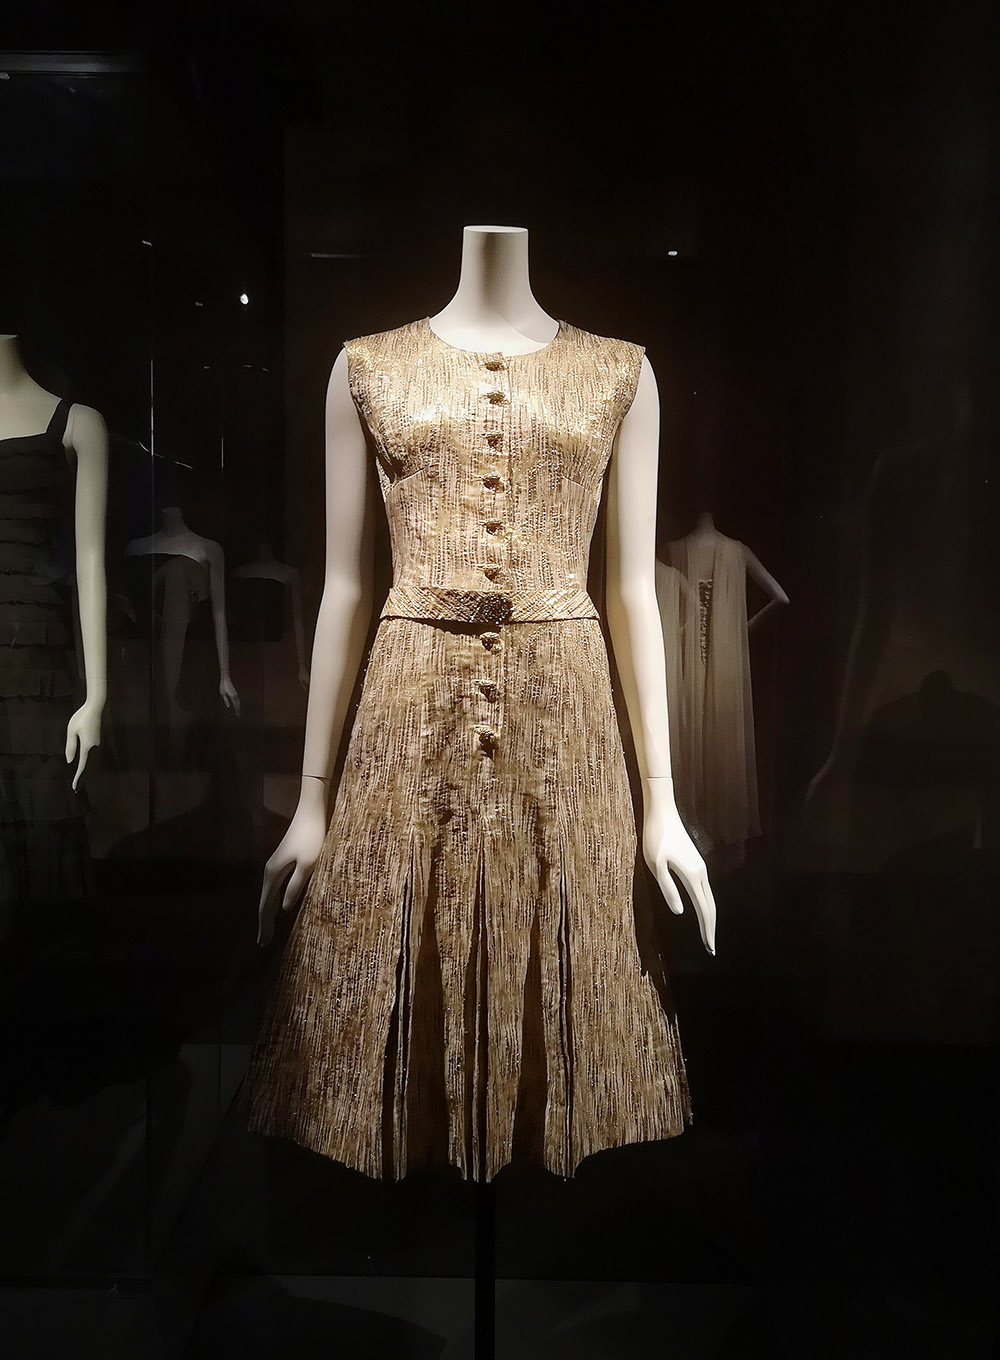 """Dress worn by Delphine Seyrig in """"Last year in Mariebad"""" / 1960-61 / Coco Chanel / Palais Galliera / 2021 / Paris, Cinémateque Francaise, Gift from Delphine Seyrig"""